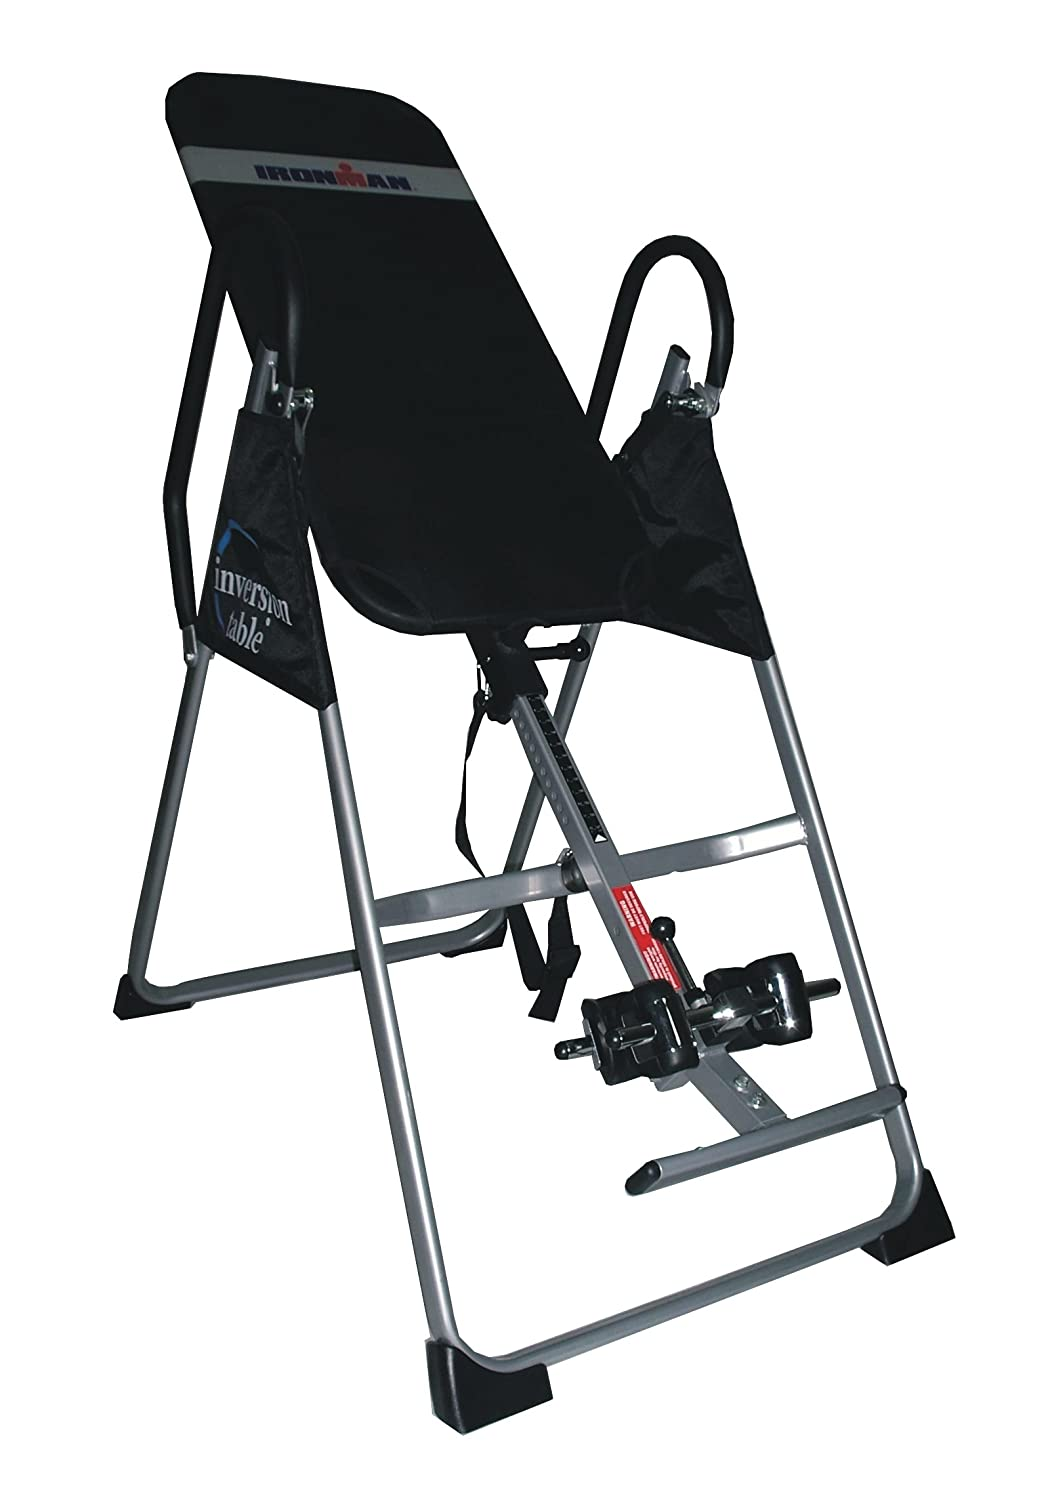 ironman gravity 1000 inversion table rh amazon com ironman inversion table 5501 ironman inversion table 4000